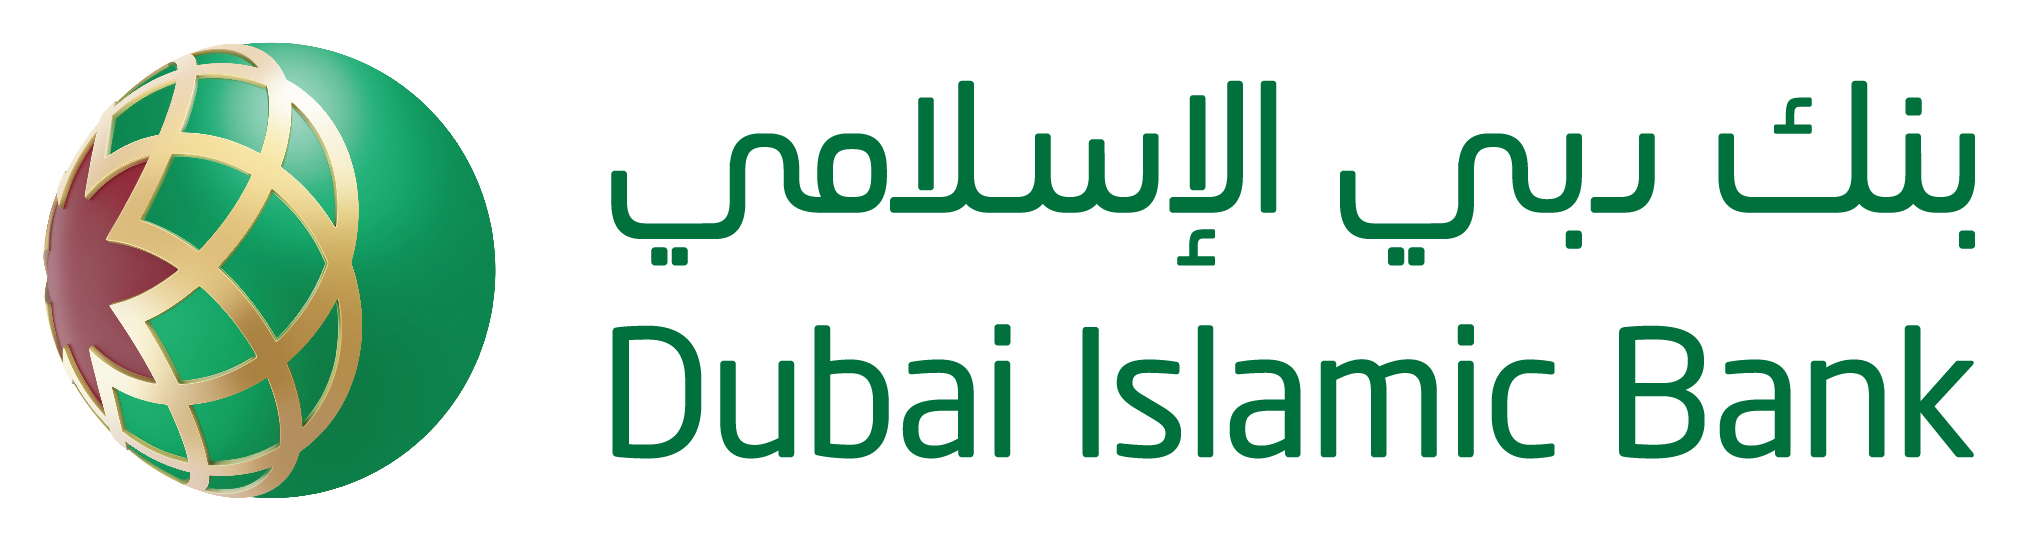 Dubai Islamic Bank - Al Islami Home Finance Multiple Property Finance